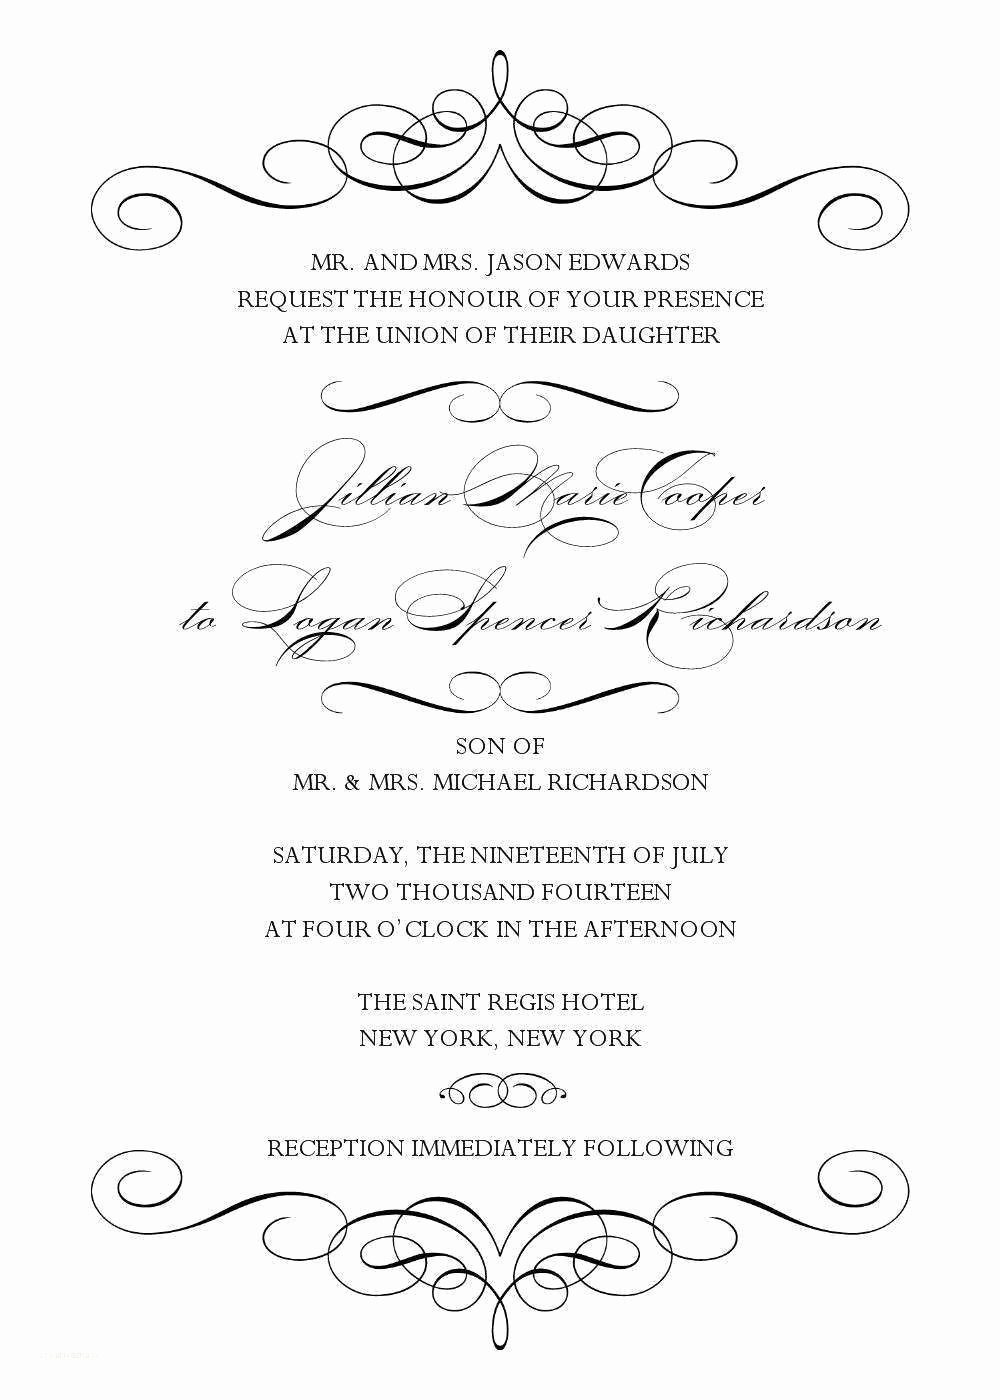 Ms Word Wedding Invitation Template Awesome Blank Wedding Invitation Templates for Microsoft Word